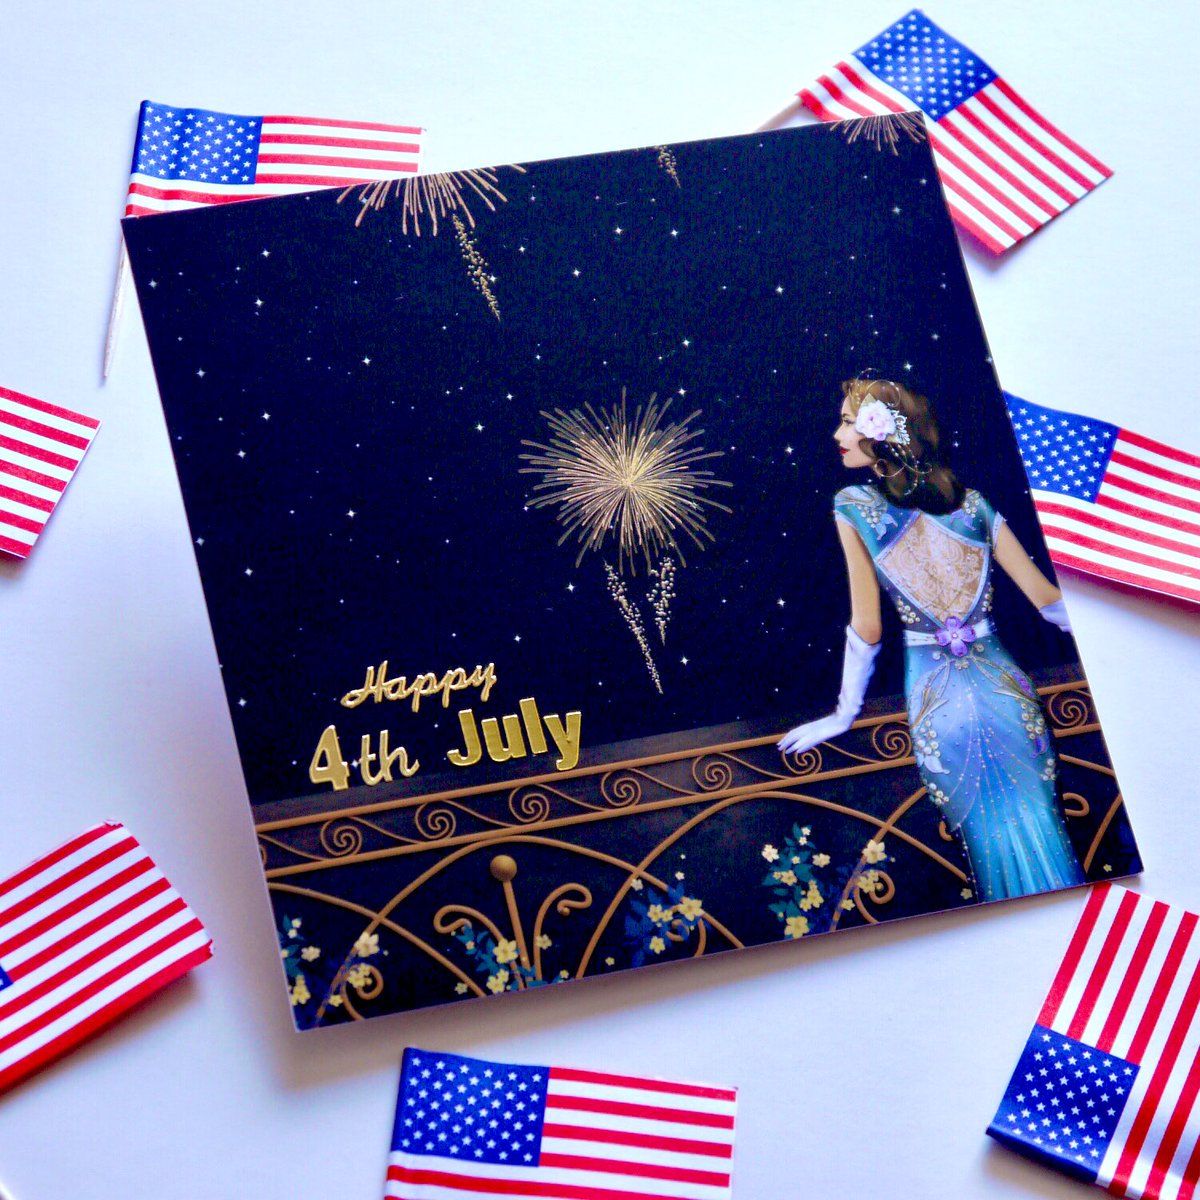 Wish your friends across the pond a Happy 4th of July with one our handmade cards! Available in our #Etsy shop now 🇺🇸 #hedgehogcraftco #handmade #4thofJuly #IndependenceDay #supportsmallbusiness #shopindie #shopsmall